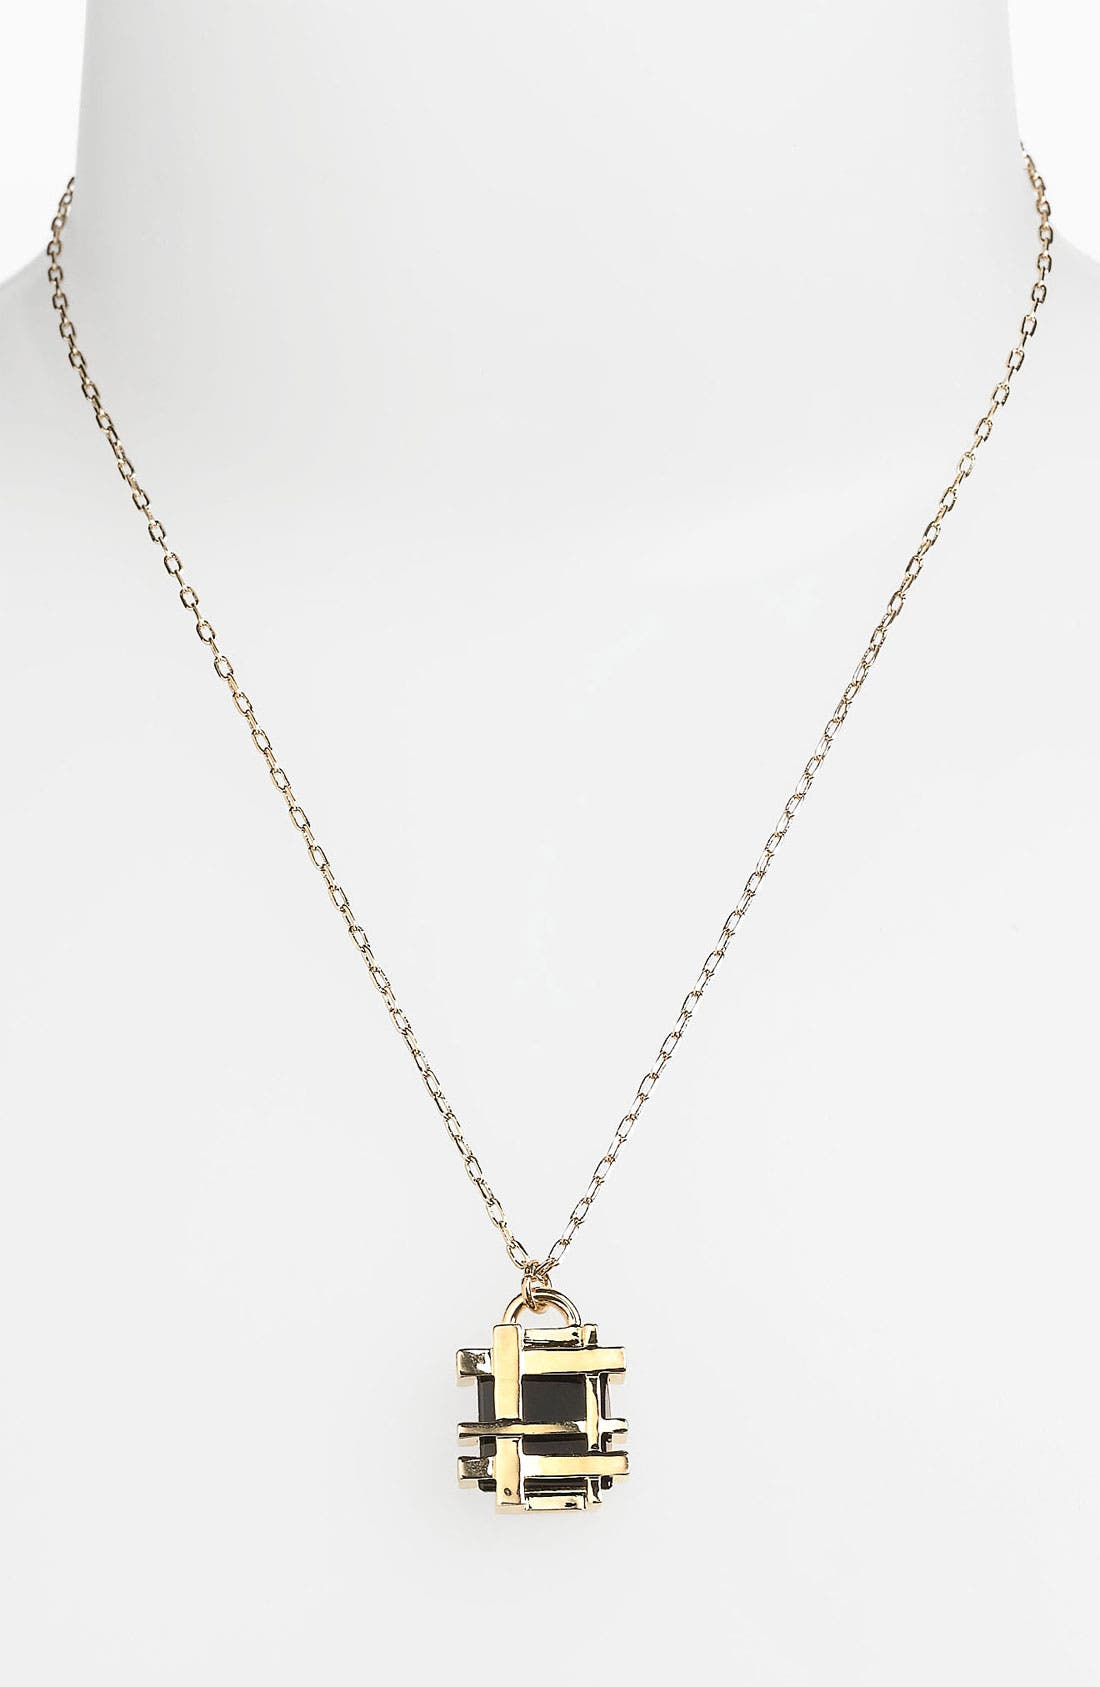 Alternate Image 1 Selected - Tory Burch 'Mini' Pendant Necklace